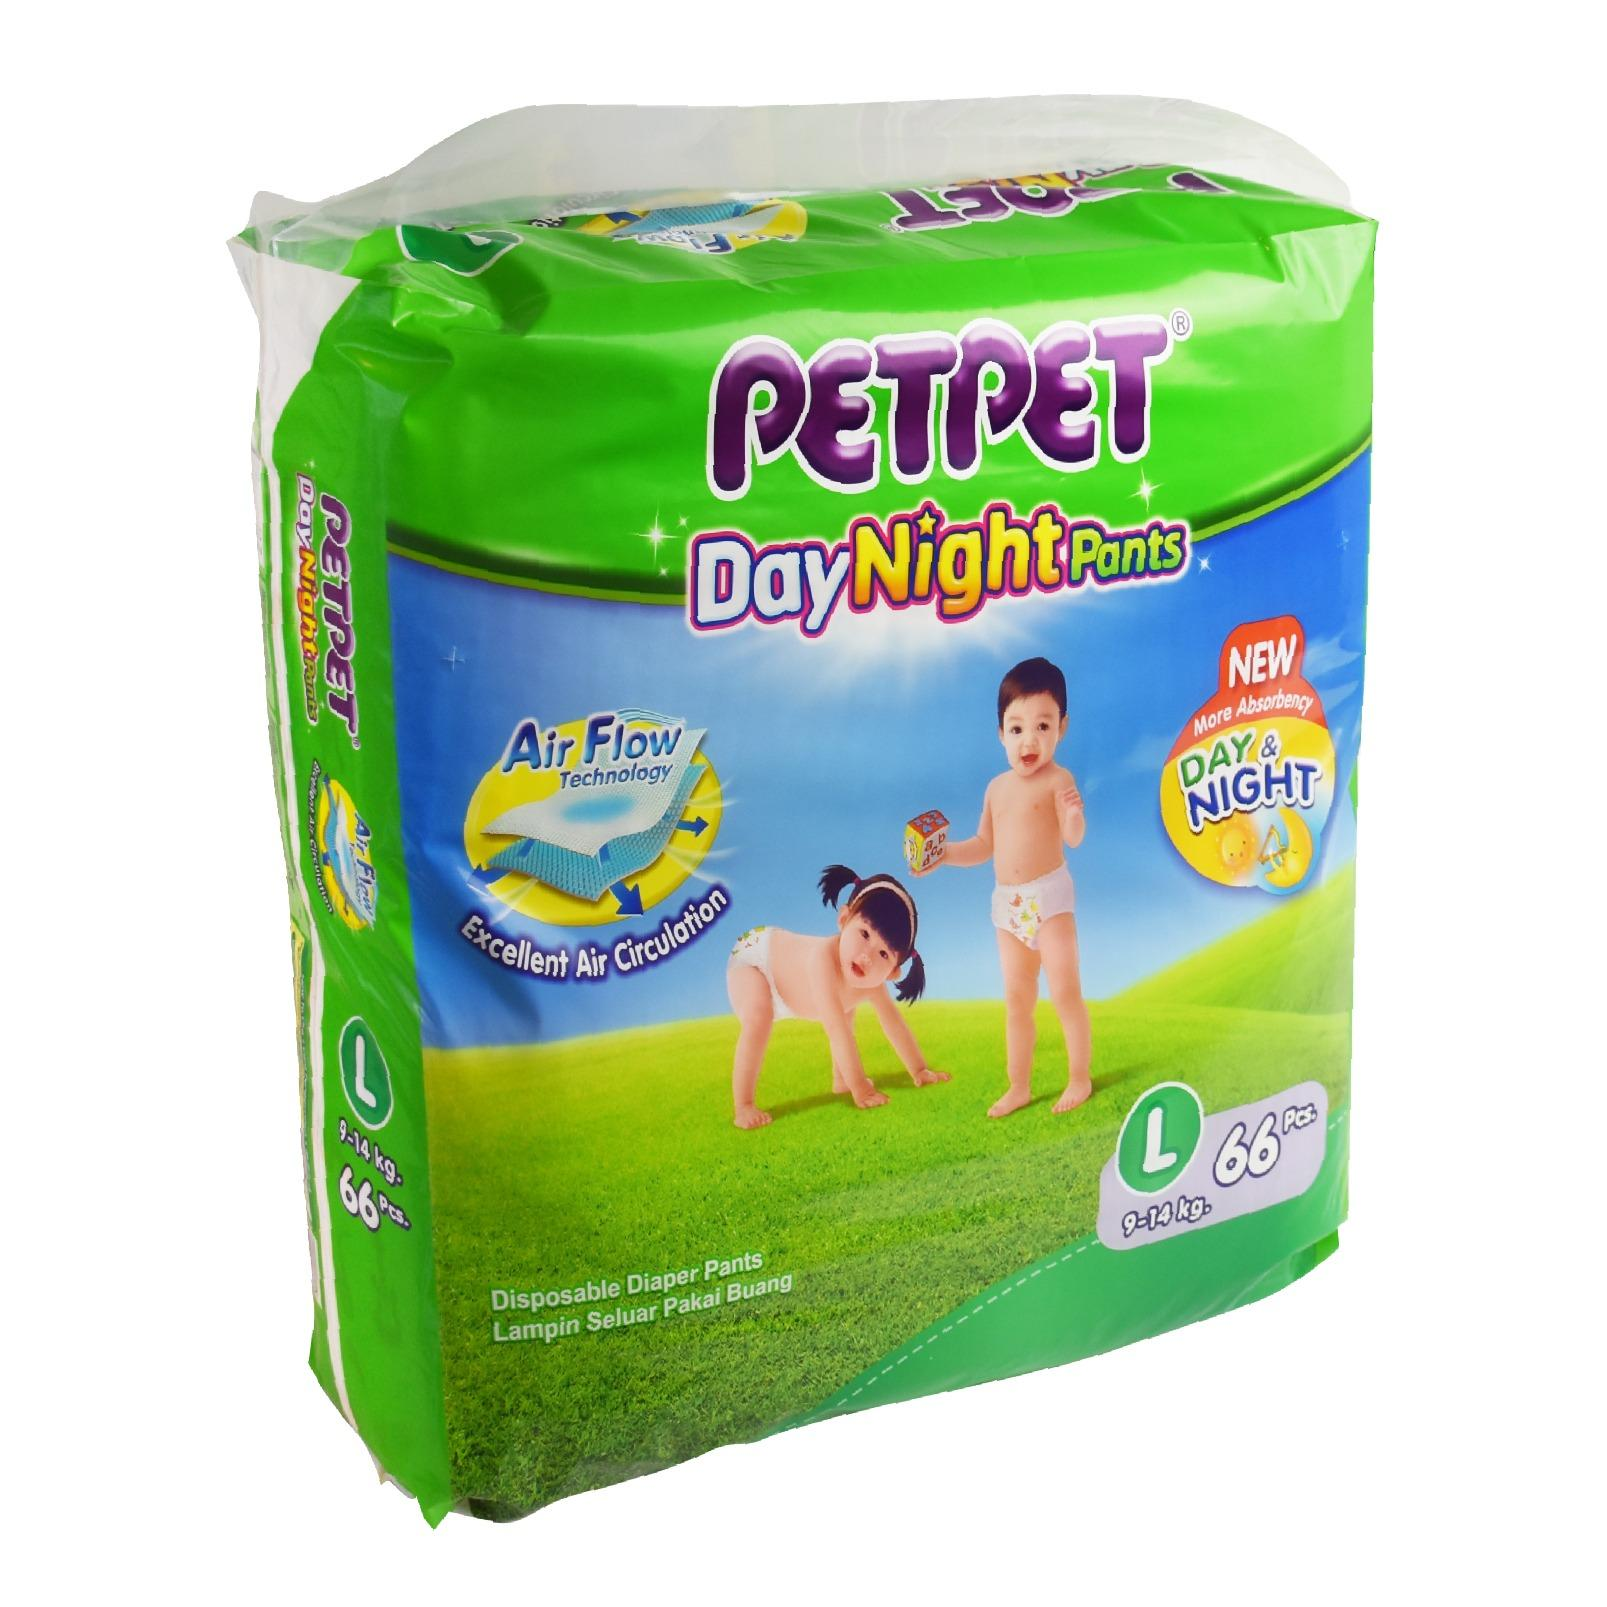 PetPet DayNight Pants Mega Pack L66 x 3 Packs